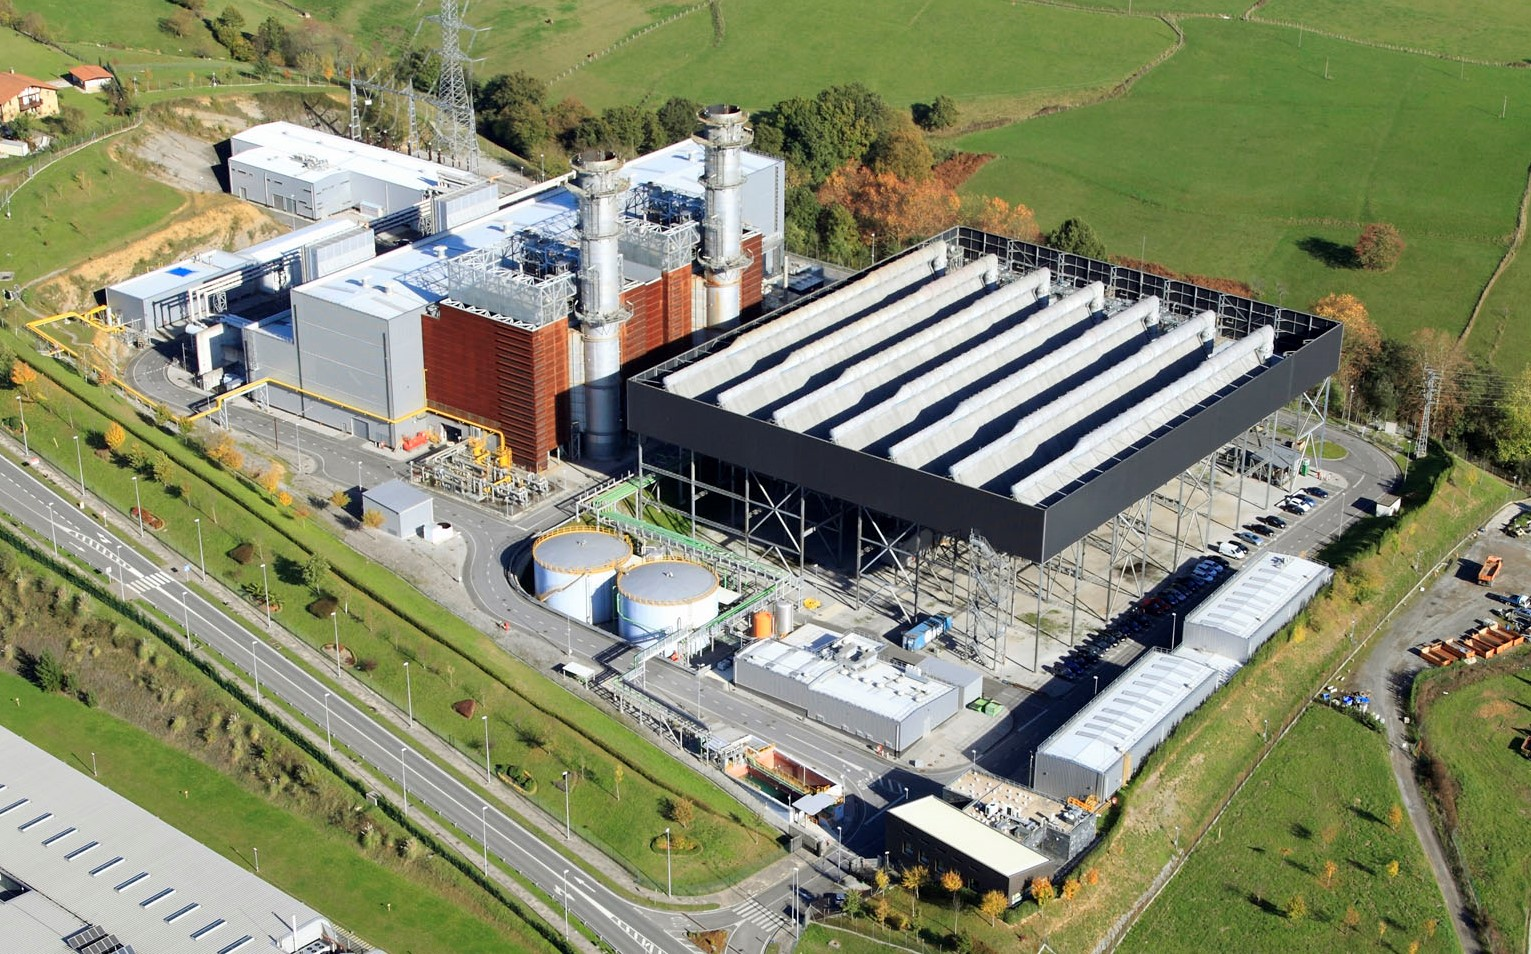 The first green hydrogen plant that maximizes the use of existing infrastructure in Spain will start operations in Amorebieta in 2022